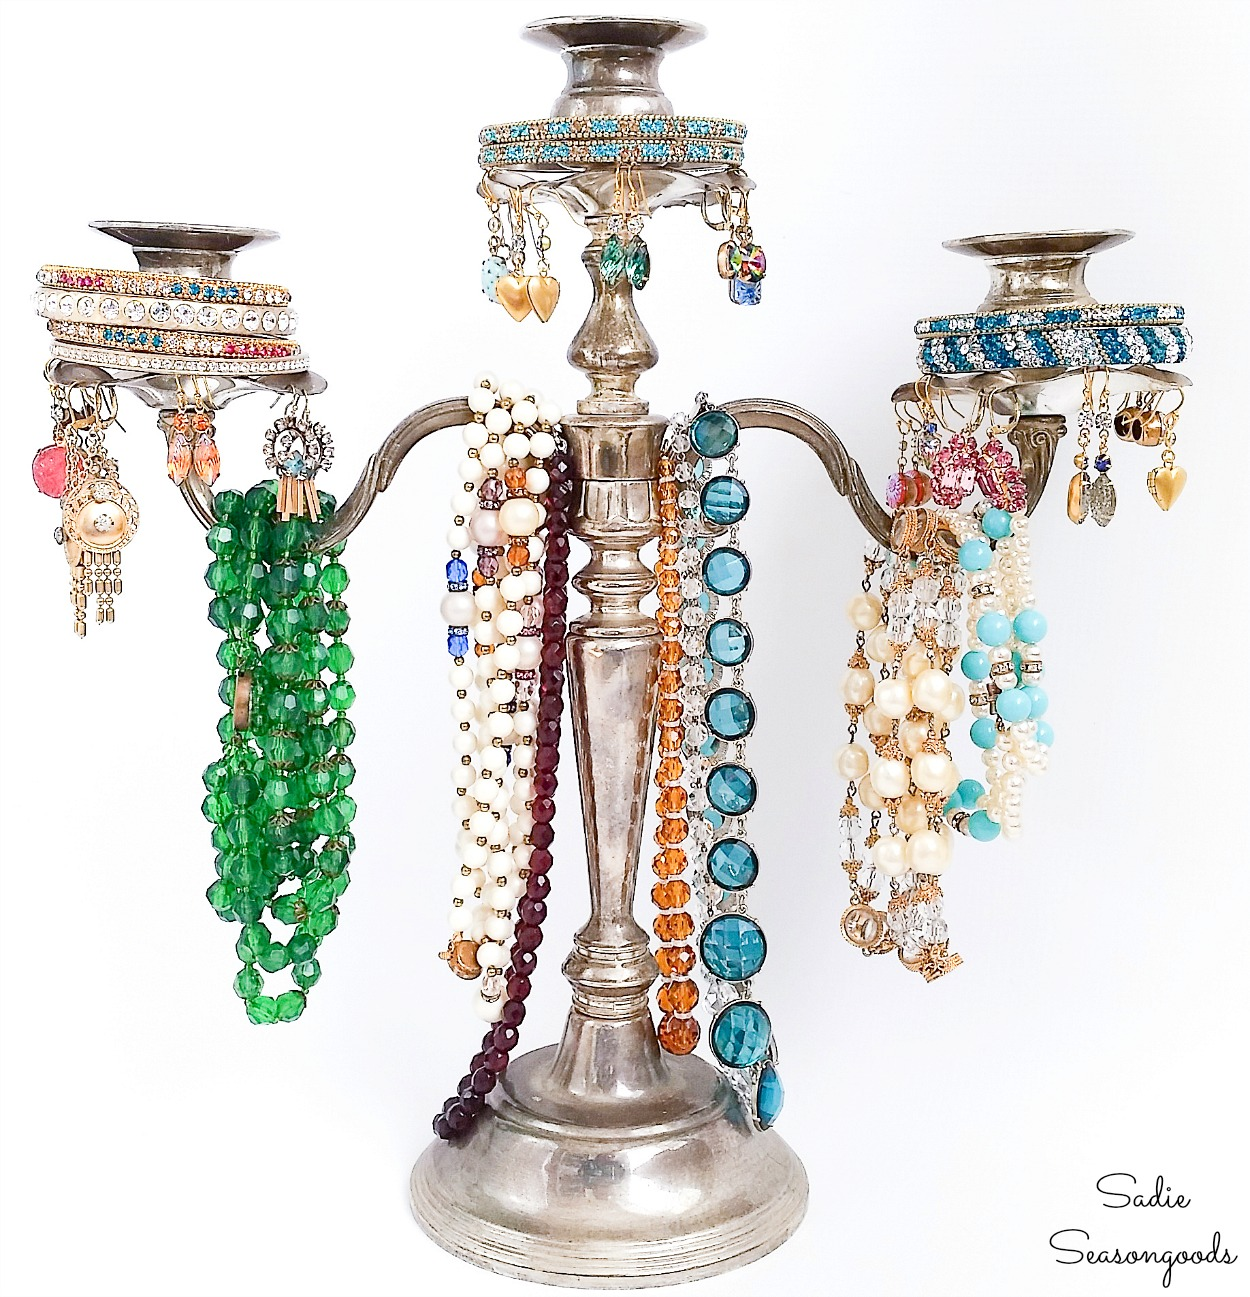 Repurposing a Silver Candelabra into a Jewelry Tree